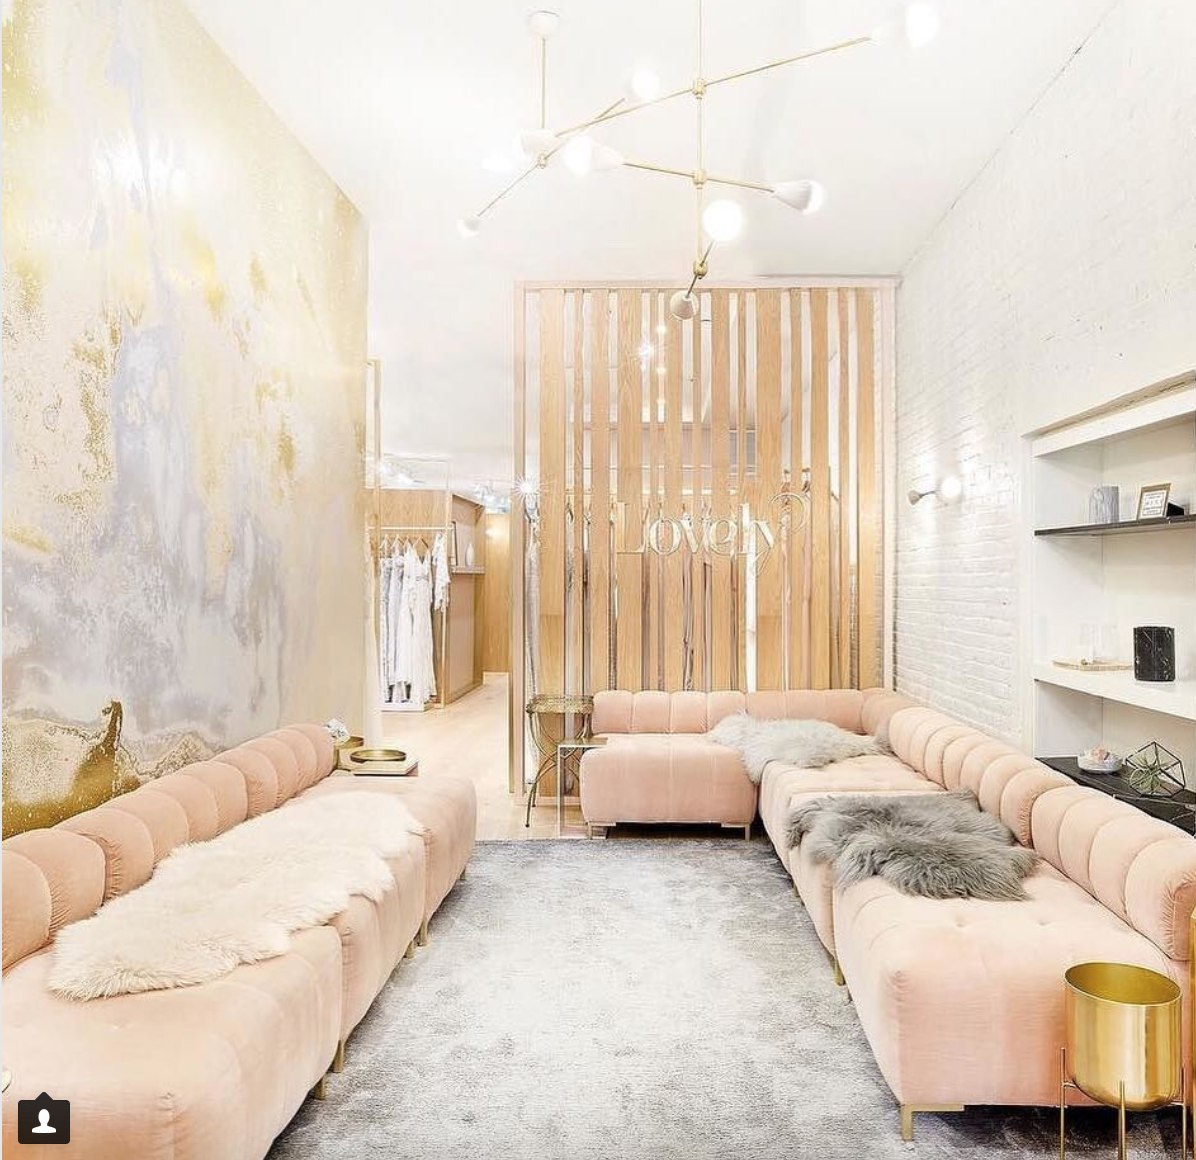 The 9 Best Bridal Salons in New York City #bridalshops